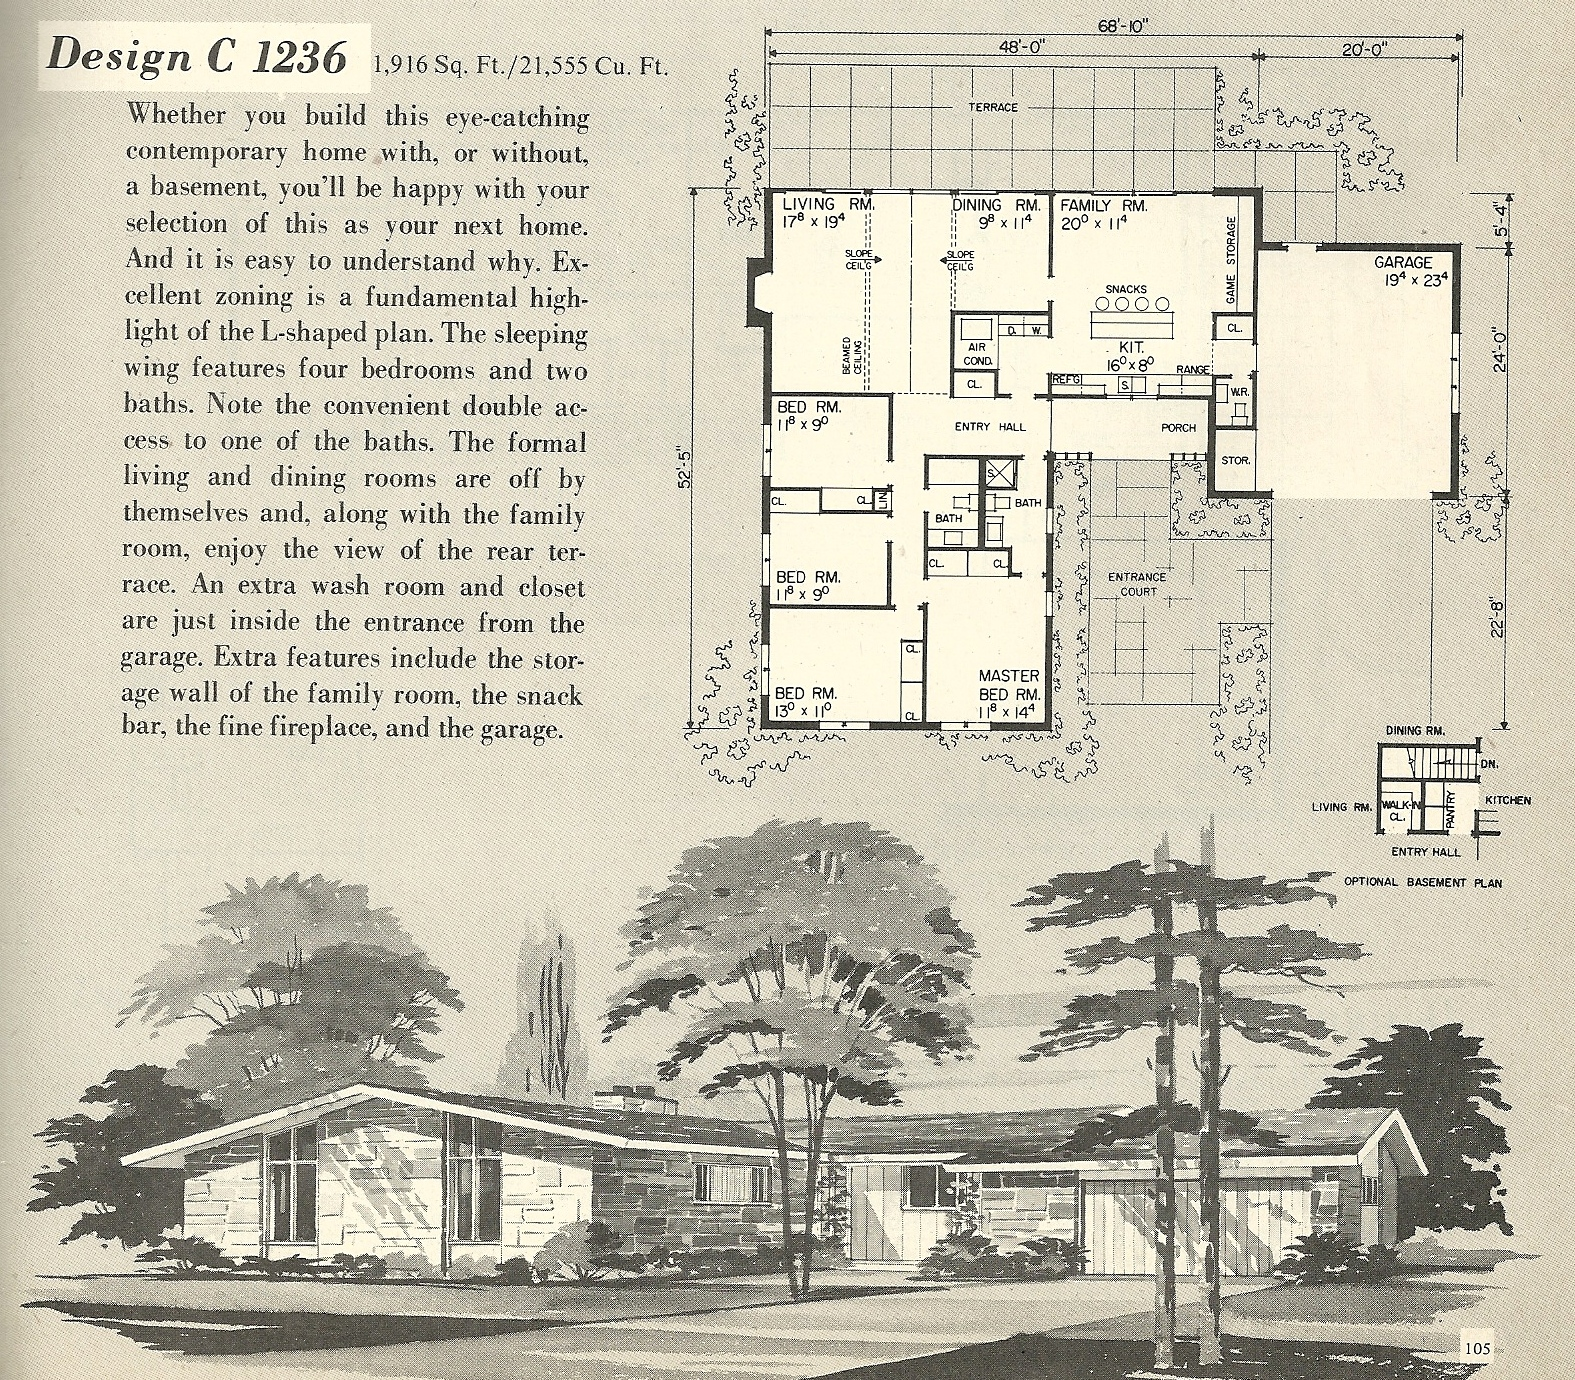 Vintage House Plans 1236 Antique Alter Ego: mid century modern home plans